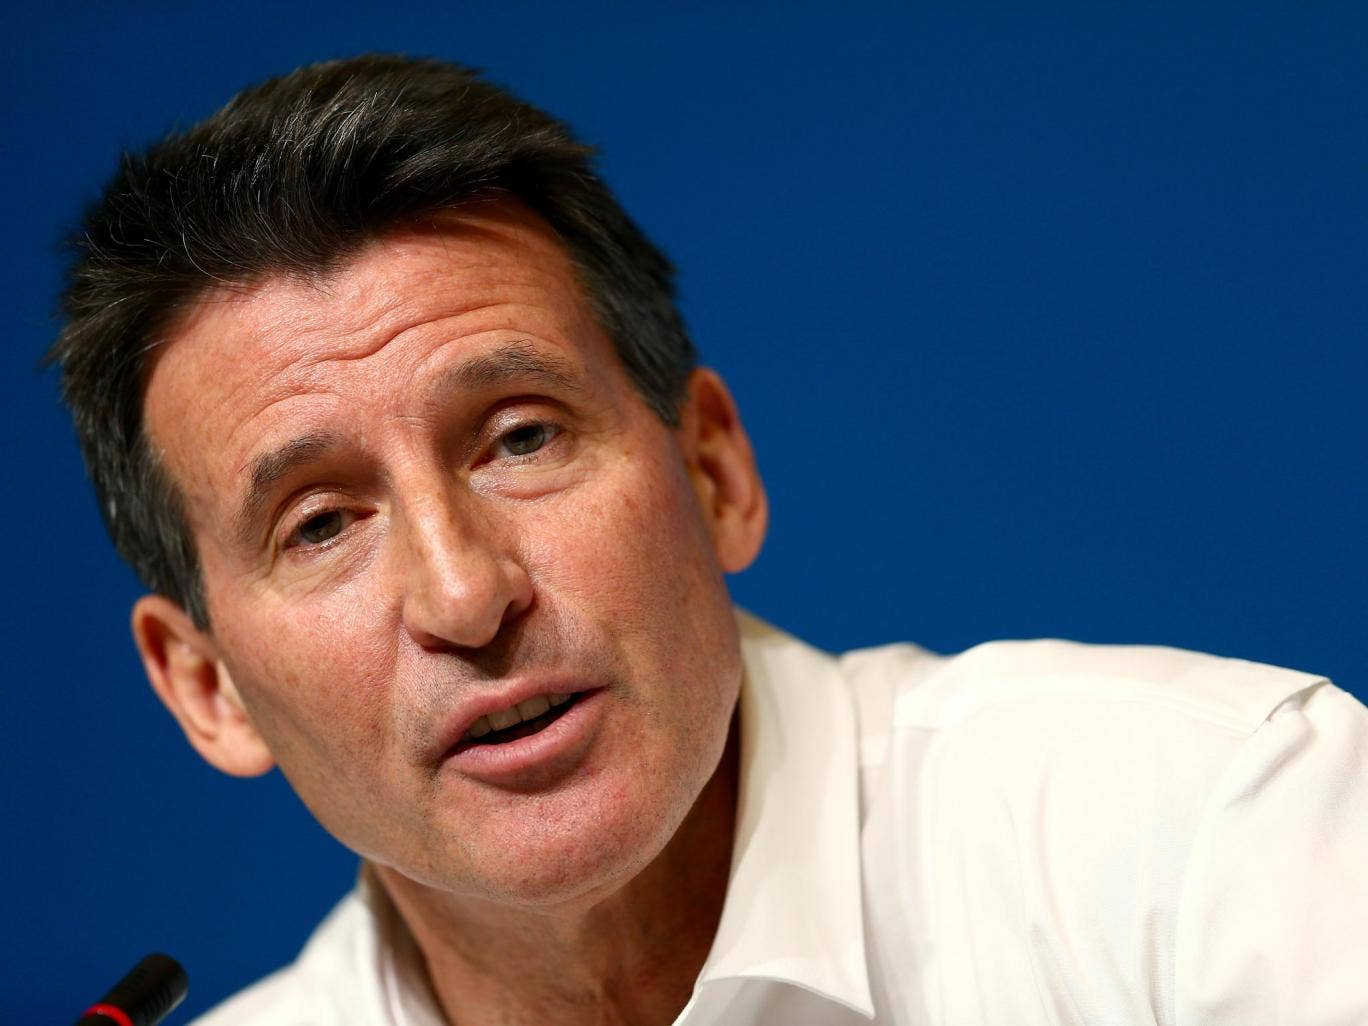 Lord Coe is regarded as 'a great leader' by the Mayor of London, Boris Johnson